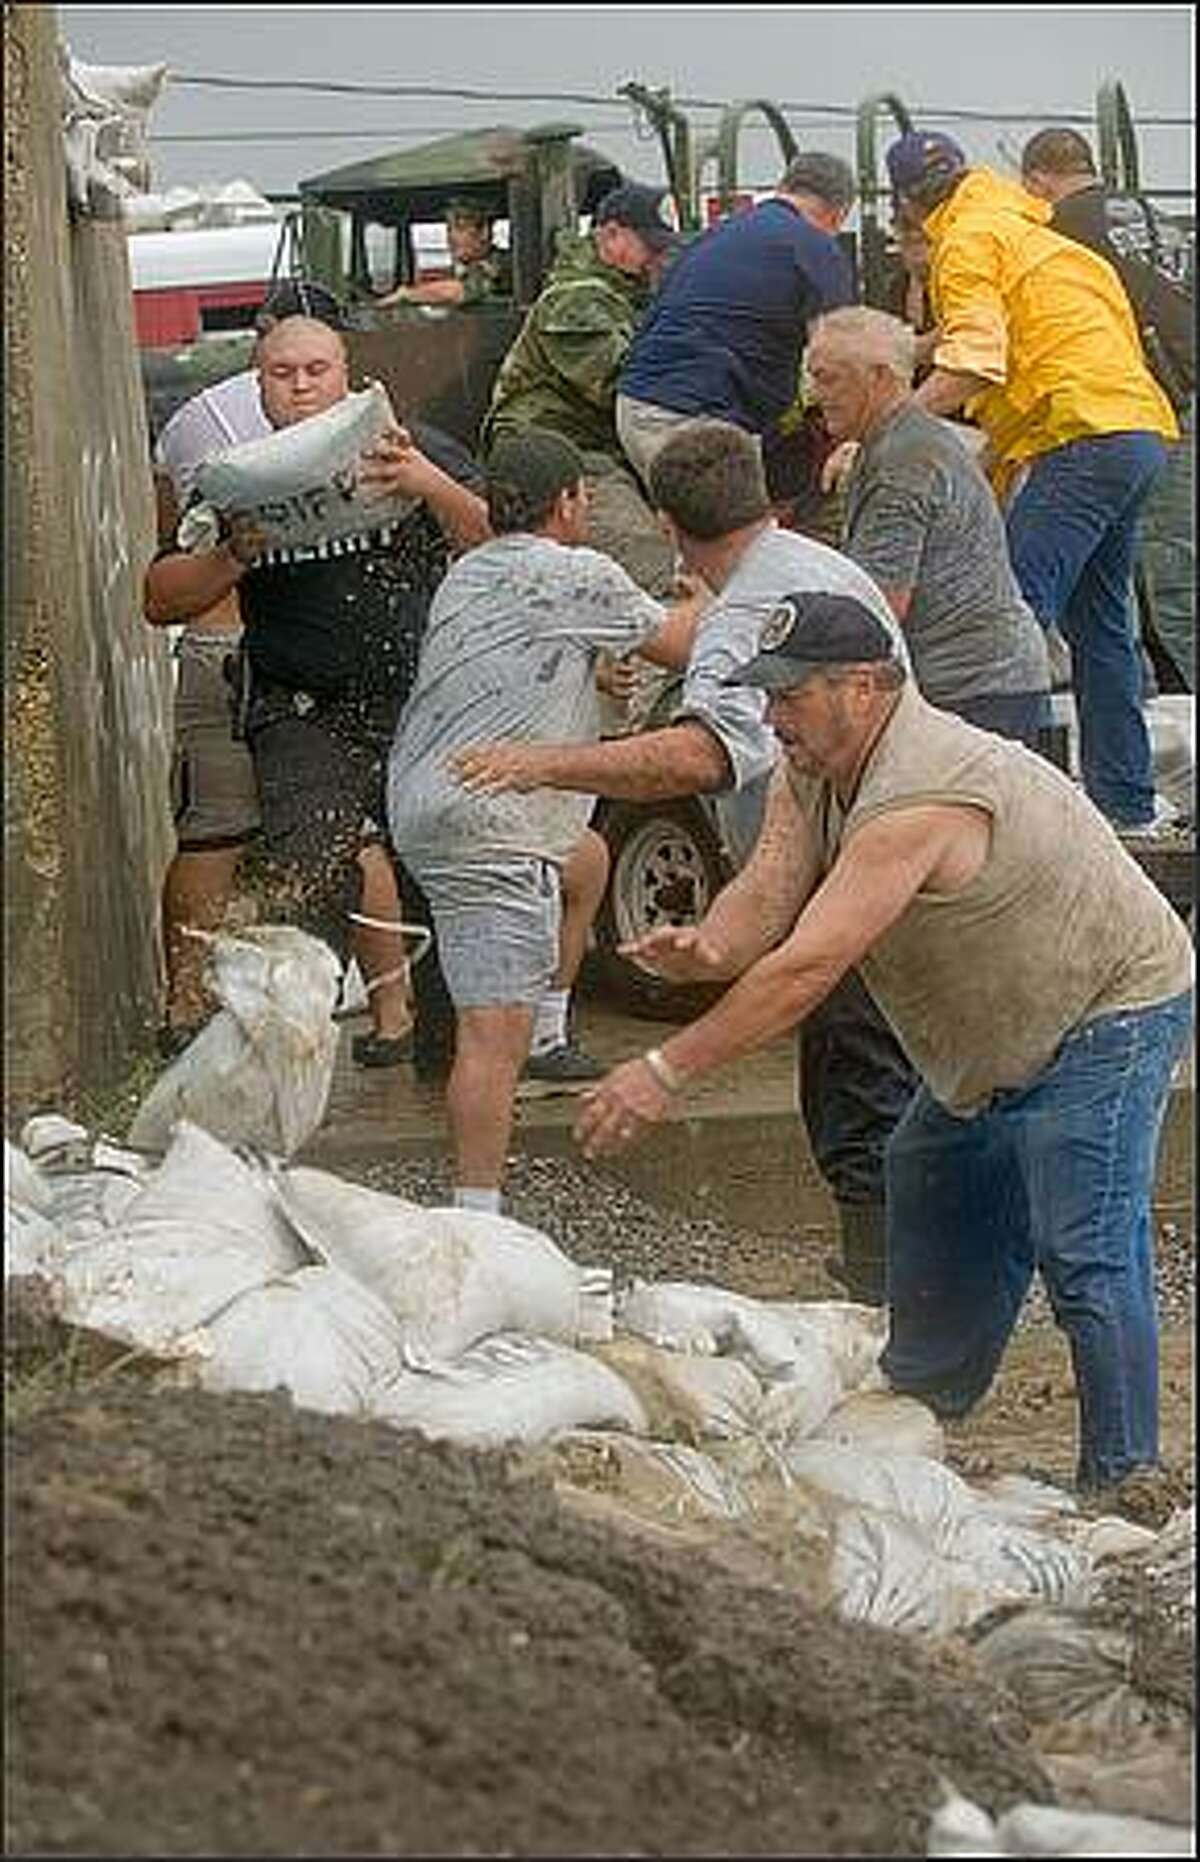 St. Bernard first responders, including trustees from the St. Bernard Parish Prison, work on stopping the flooding underneath the floodgate at the EBT Cranes building at the St. Bernard Parish and Plaquemines Parish border in the wake of Hurricane Gustav. Matthew Hinton/AFP/Getty Images